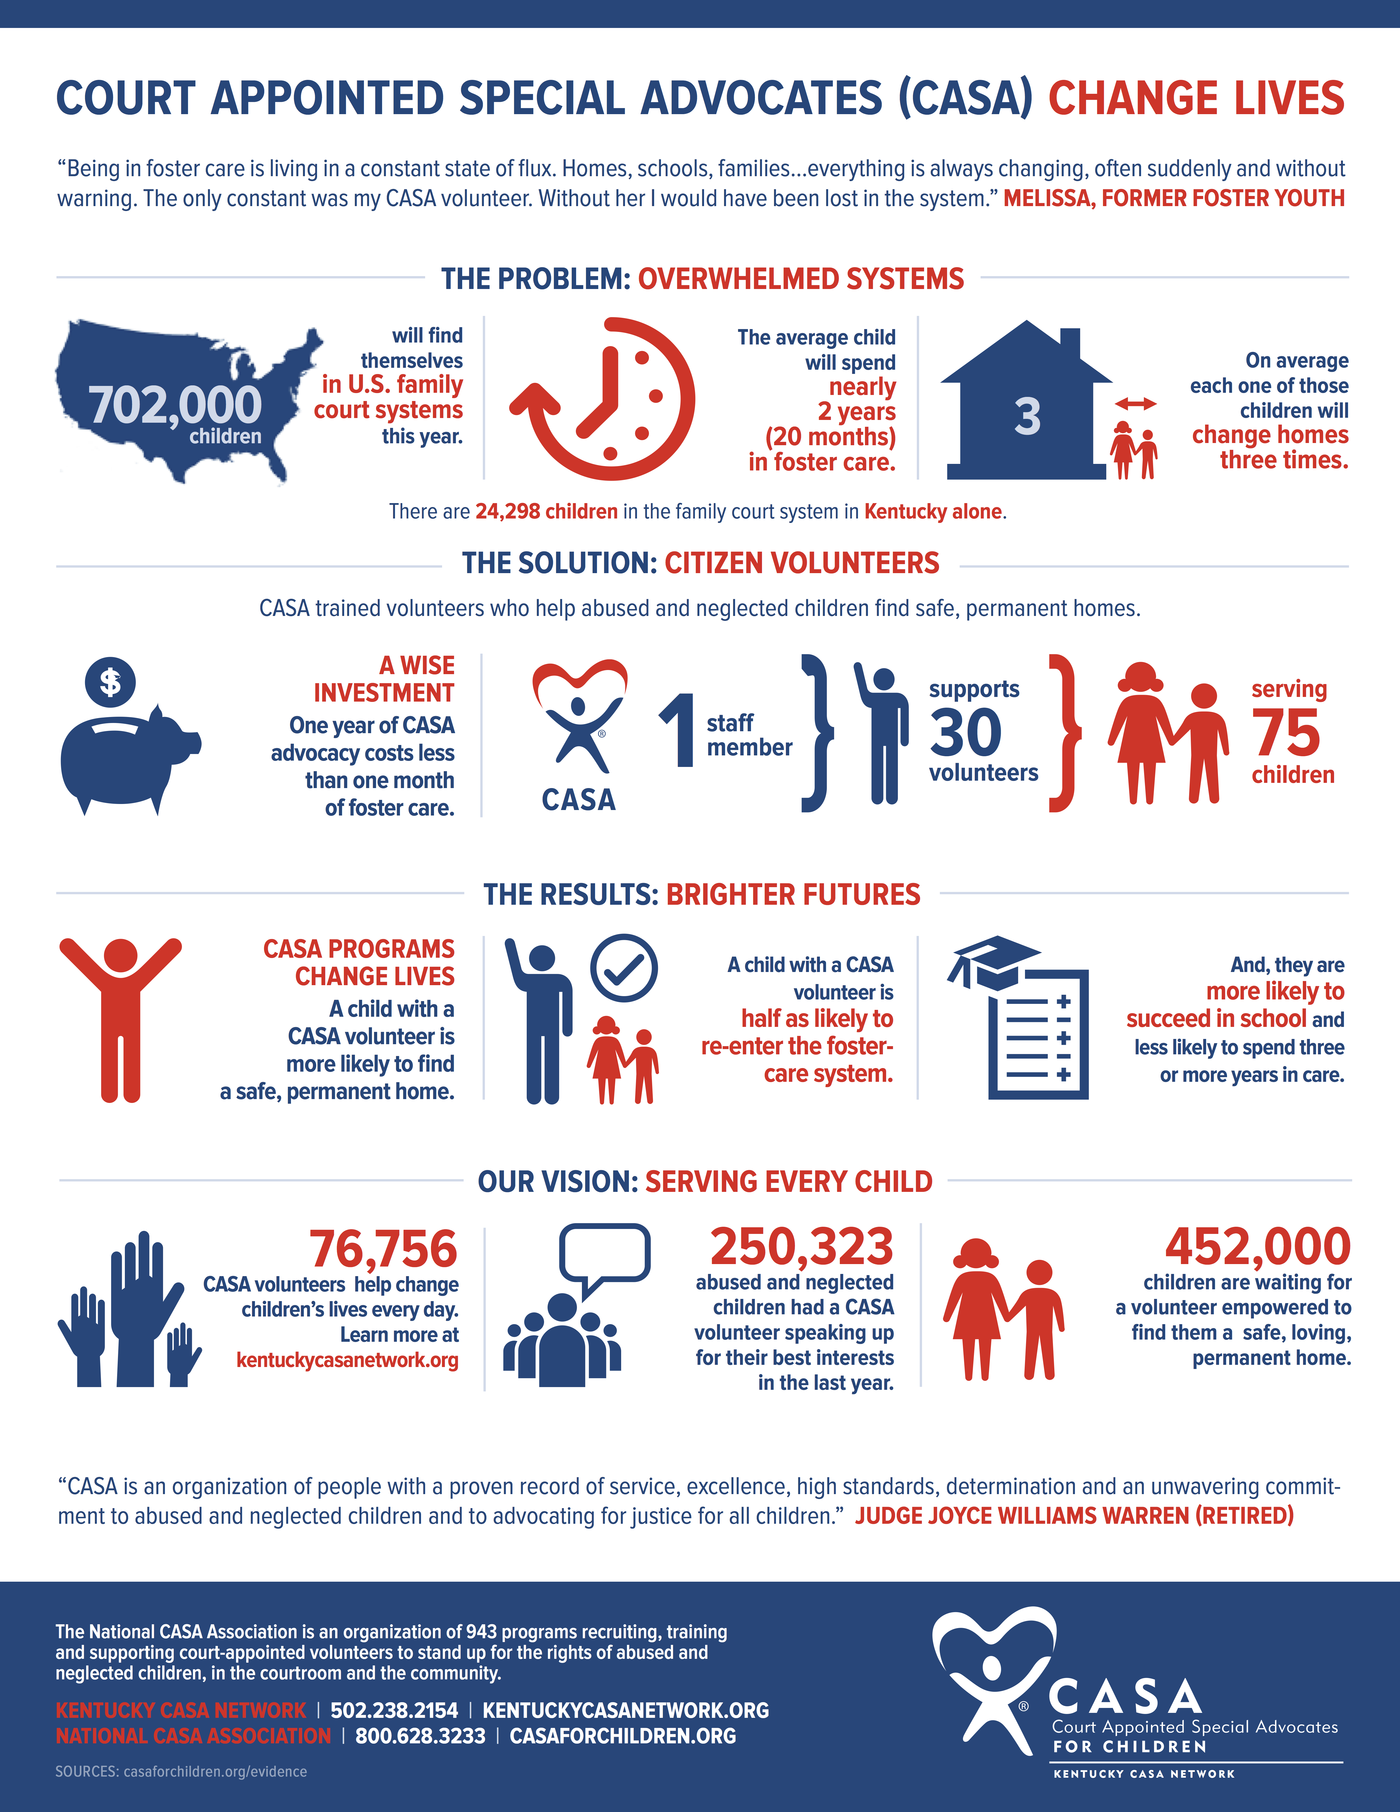 Kentucky CASA Network Infographic. 702,000 children will find themselves in family court systems this year. There are 24,298 children in the family court system in Kentucky alone.